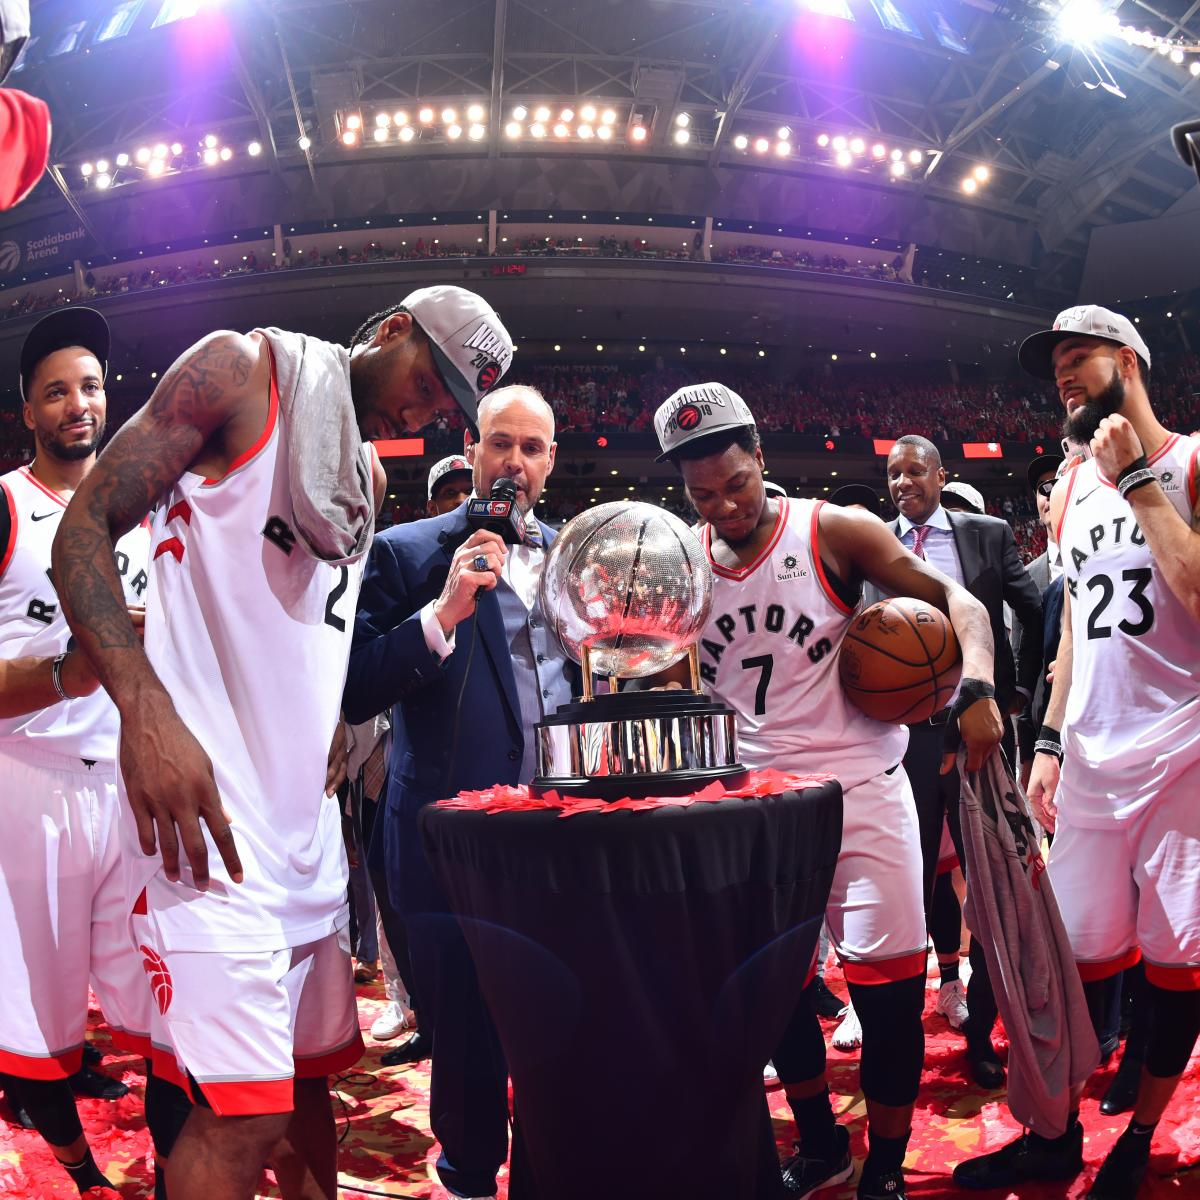 Warriors Come Out To Play Bleacher Report: Check Out These Viral Videos After Raptors Advance To NBA